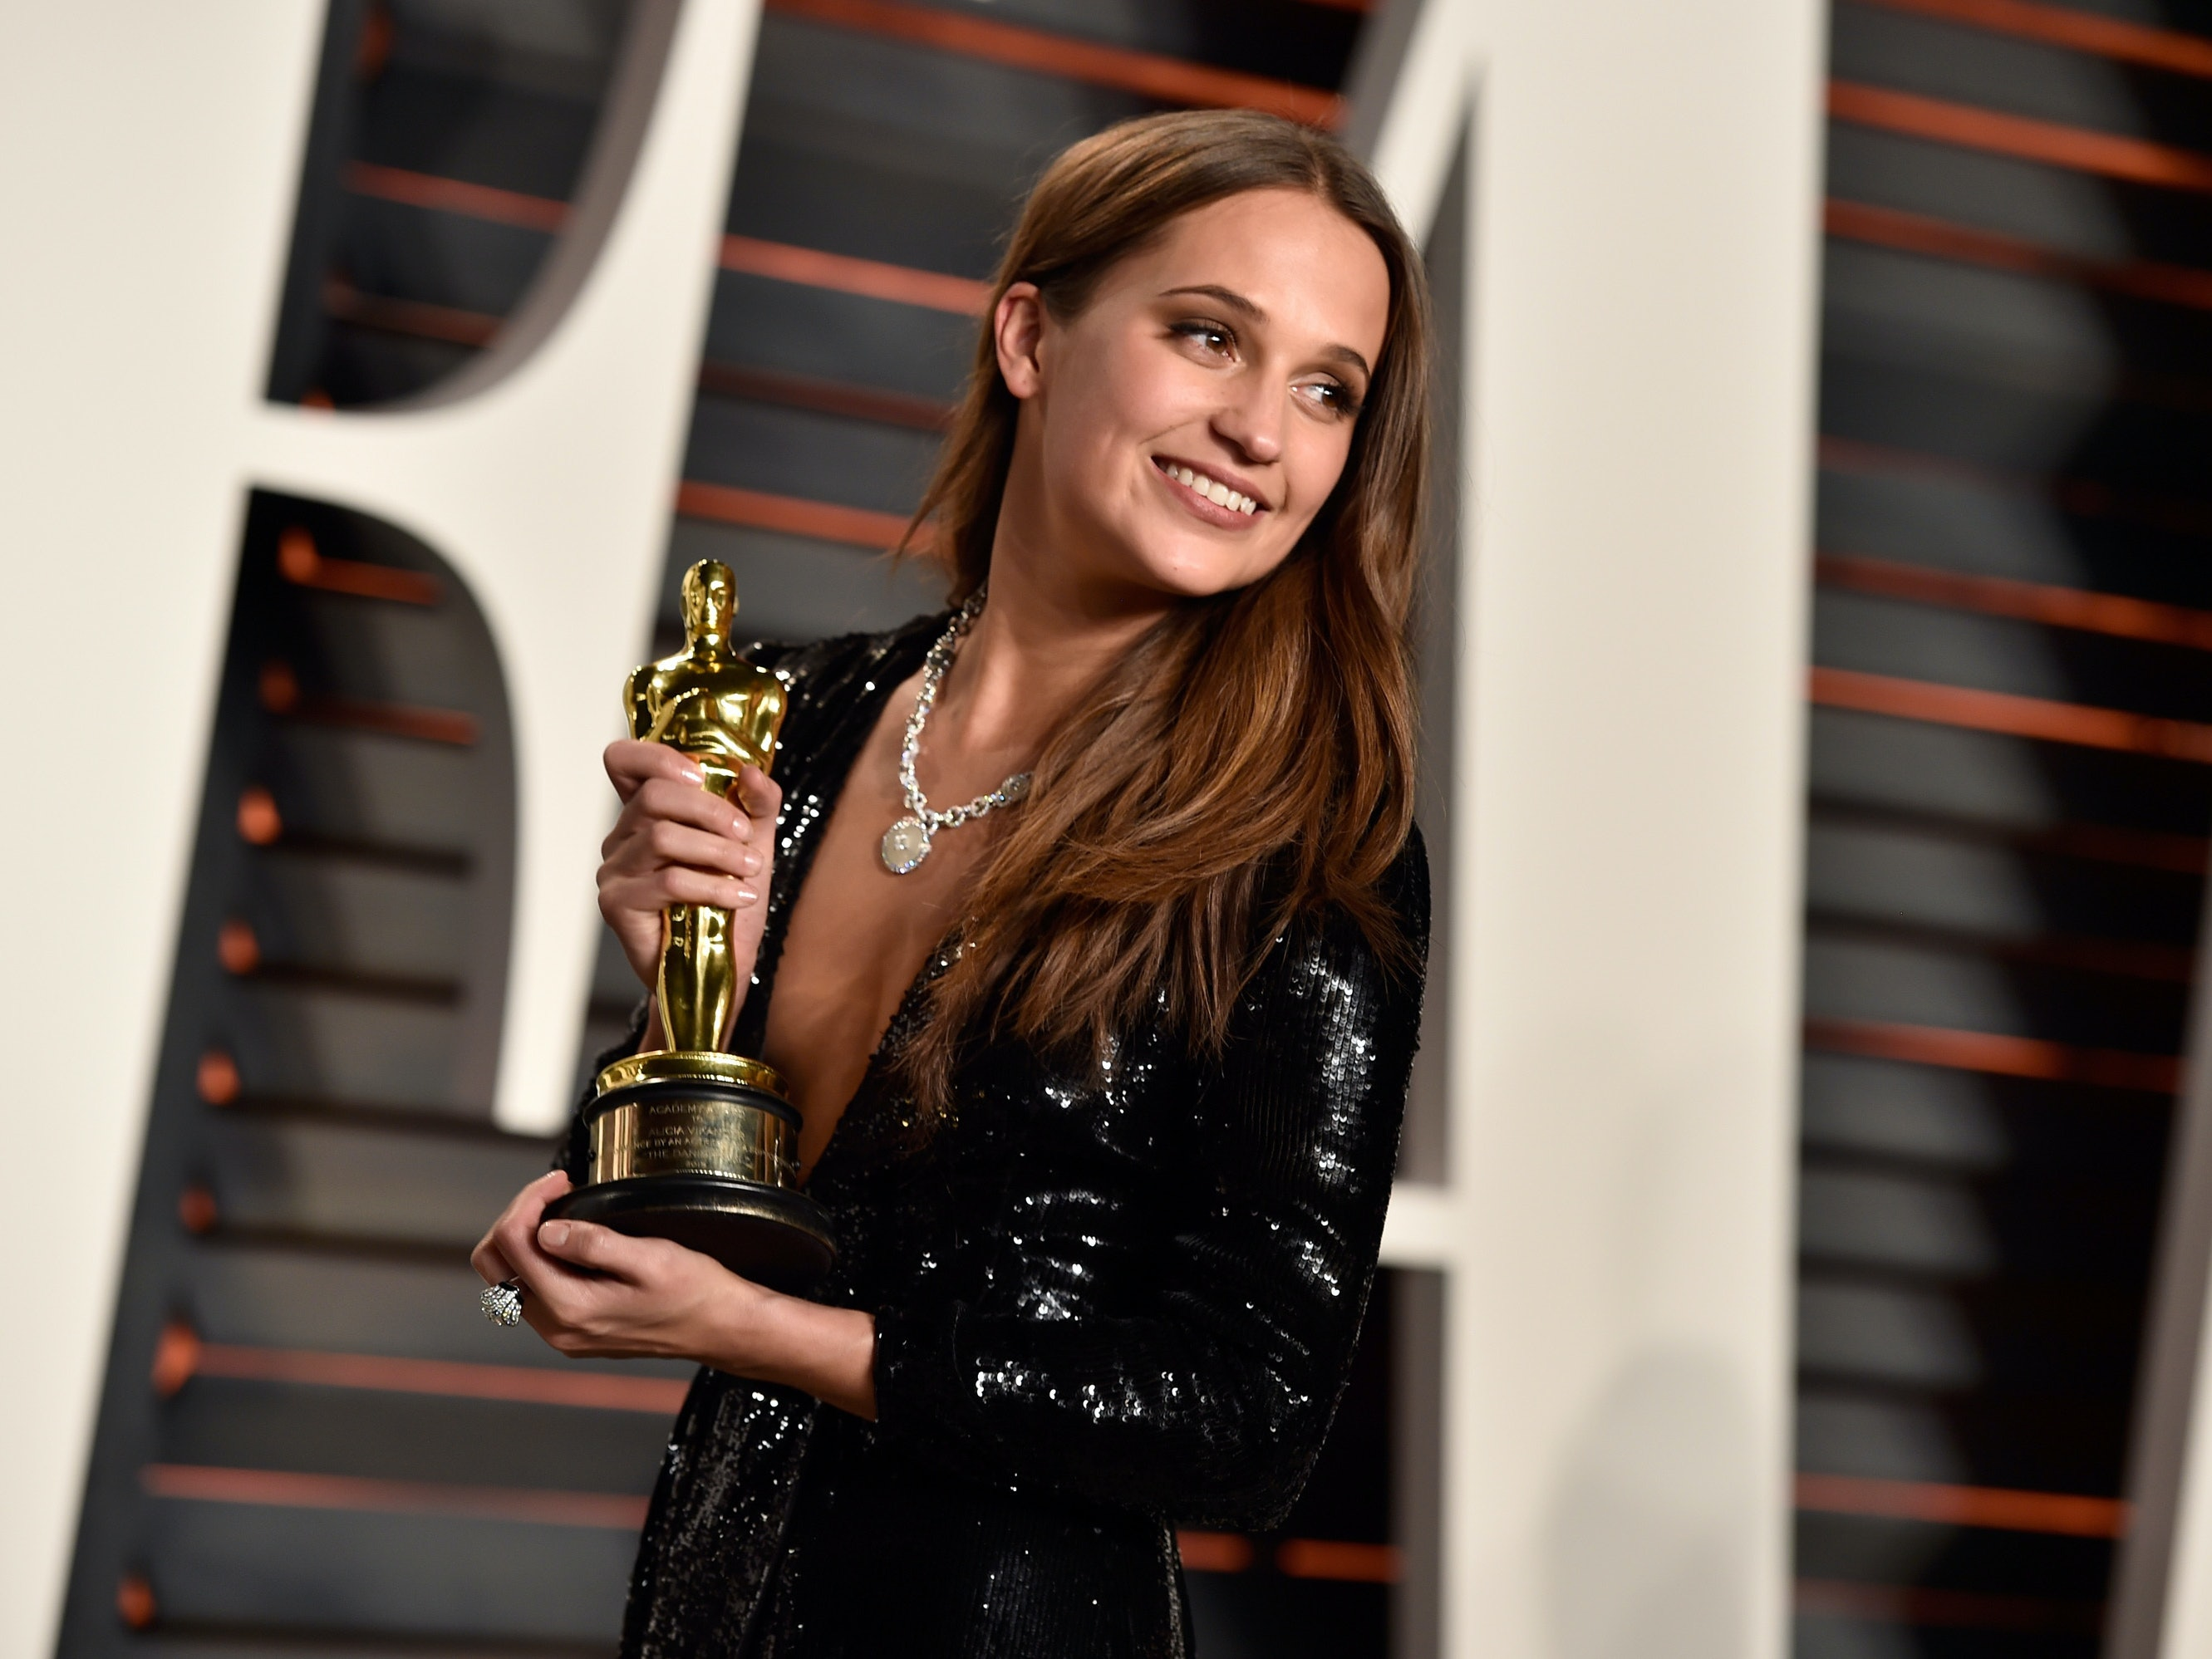 Why Alicia Vikander is the Perfect Lara Croft for the 'Tomb Raider' Reboot